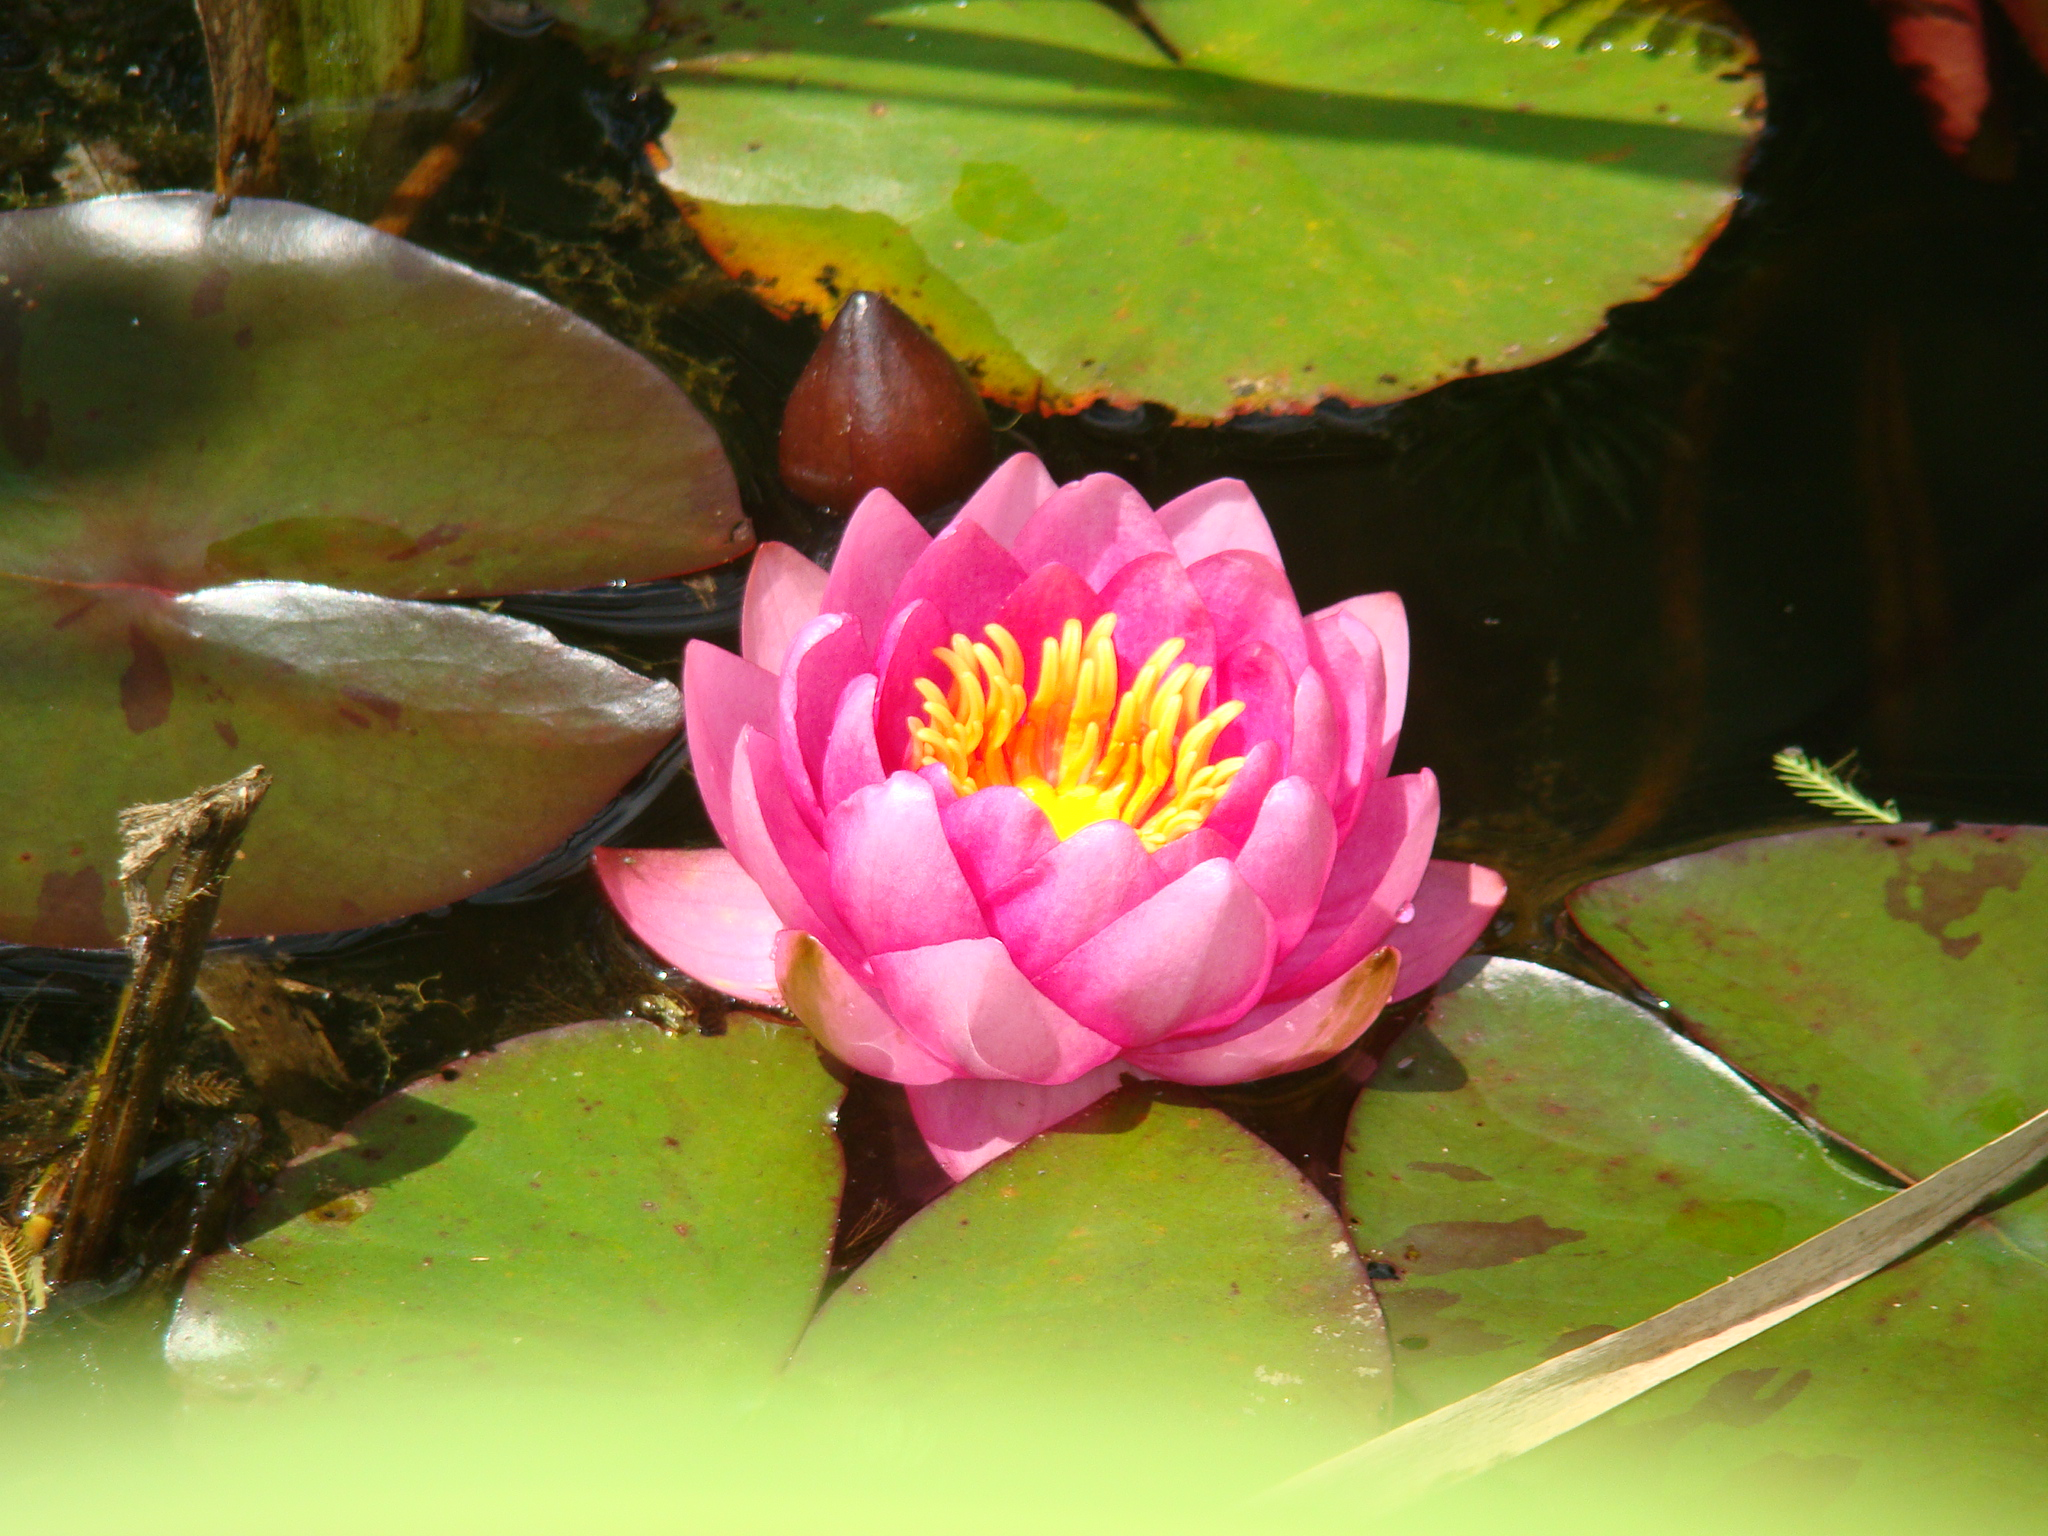 this was the first time any of us had seen a real lotus flower- SO BEAUTIFUL!!!